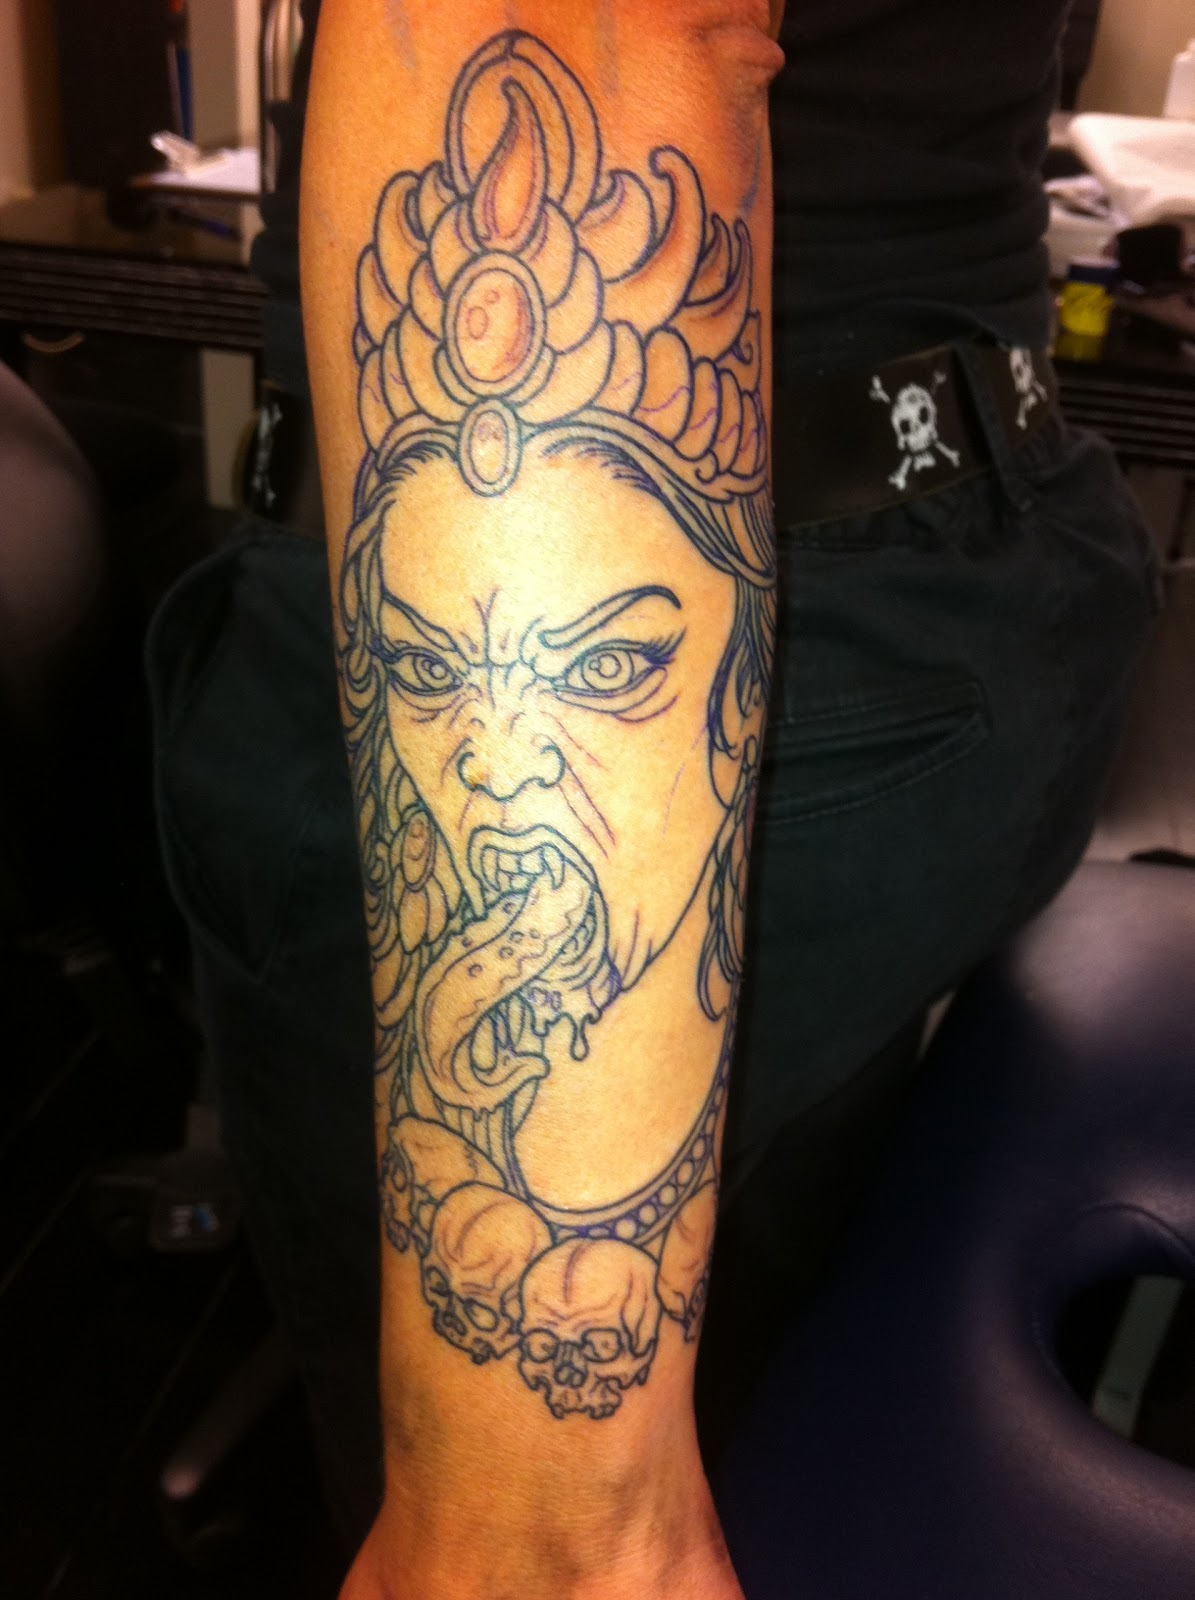 Medusa, Kali And Skull With Candle By Hamish Work In Progress